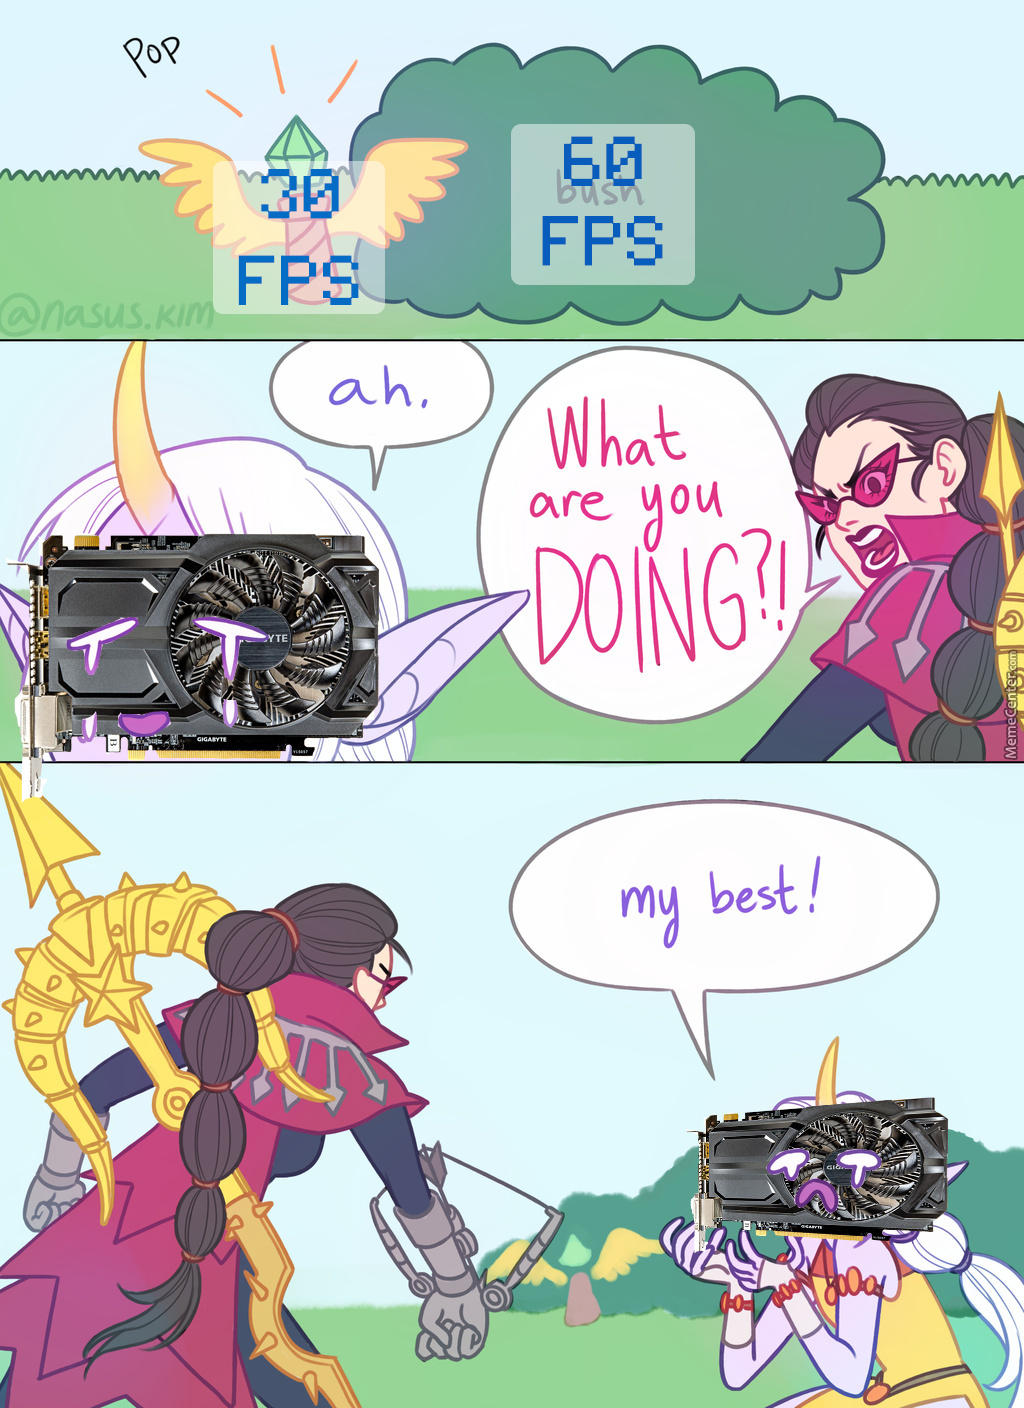 When I Try To Run A Game On High (Credit For The Art : Susan-Kim)